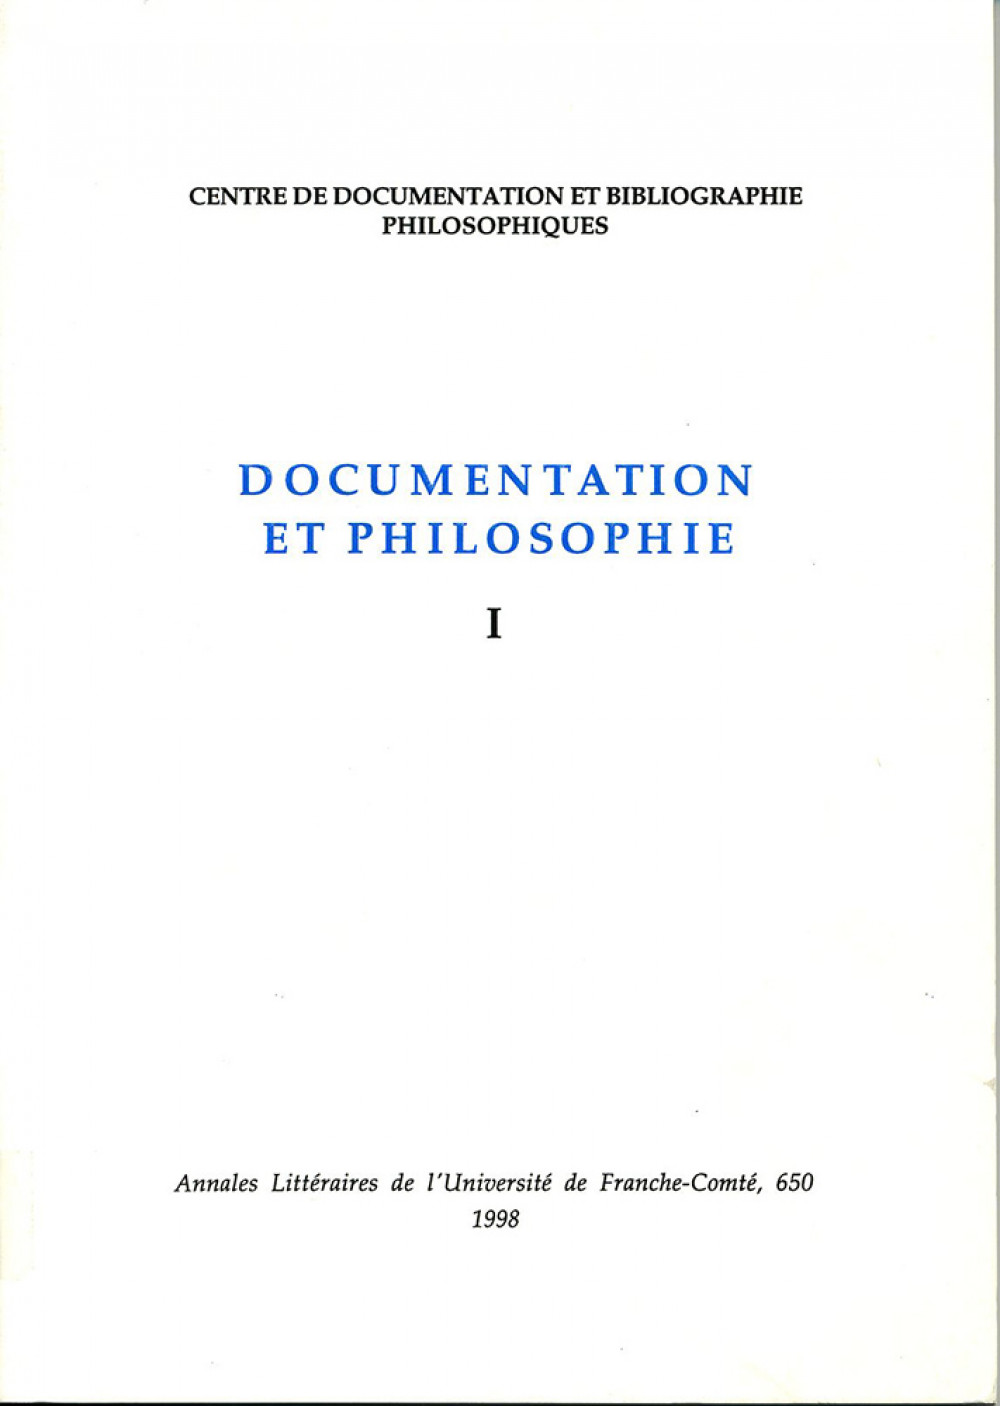 Documentation et philosophie I